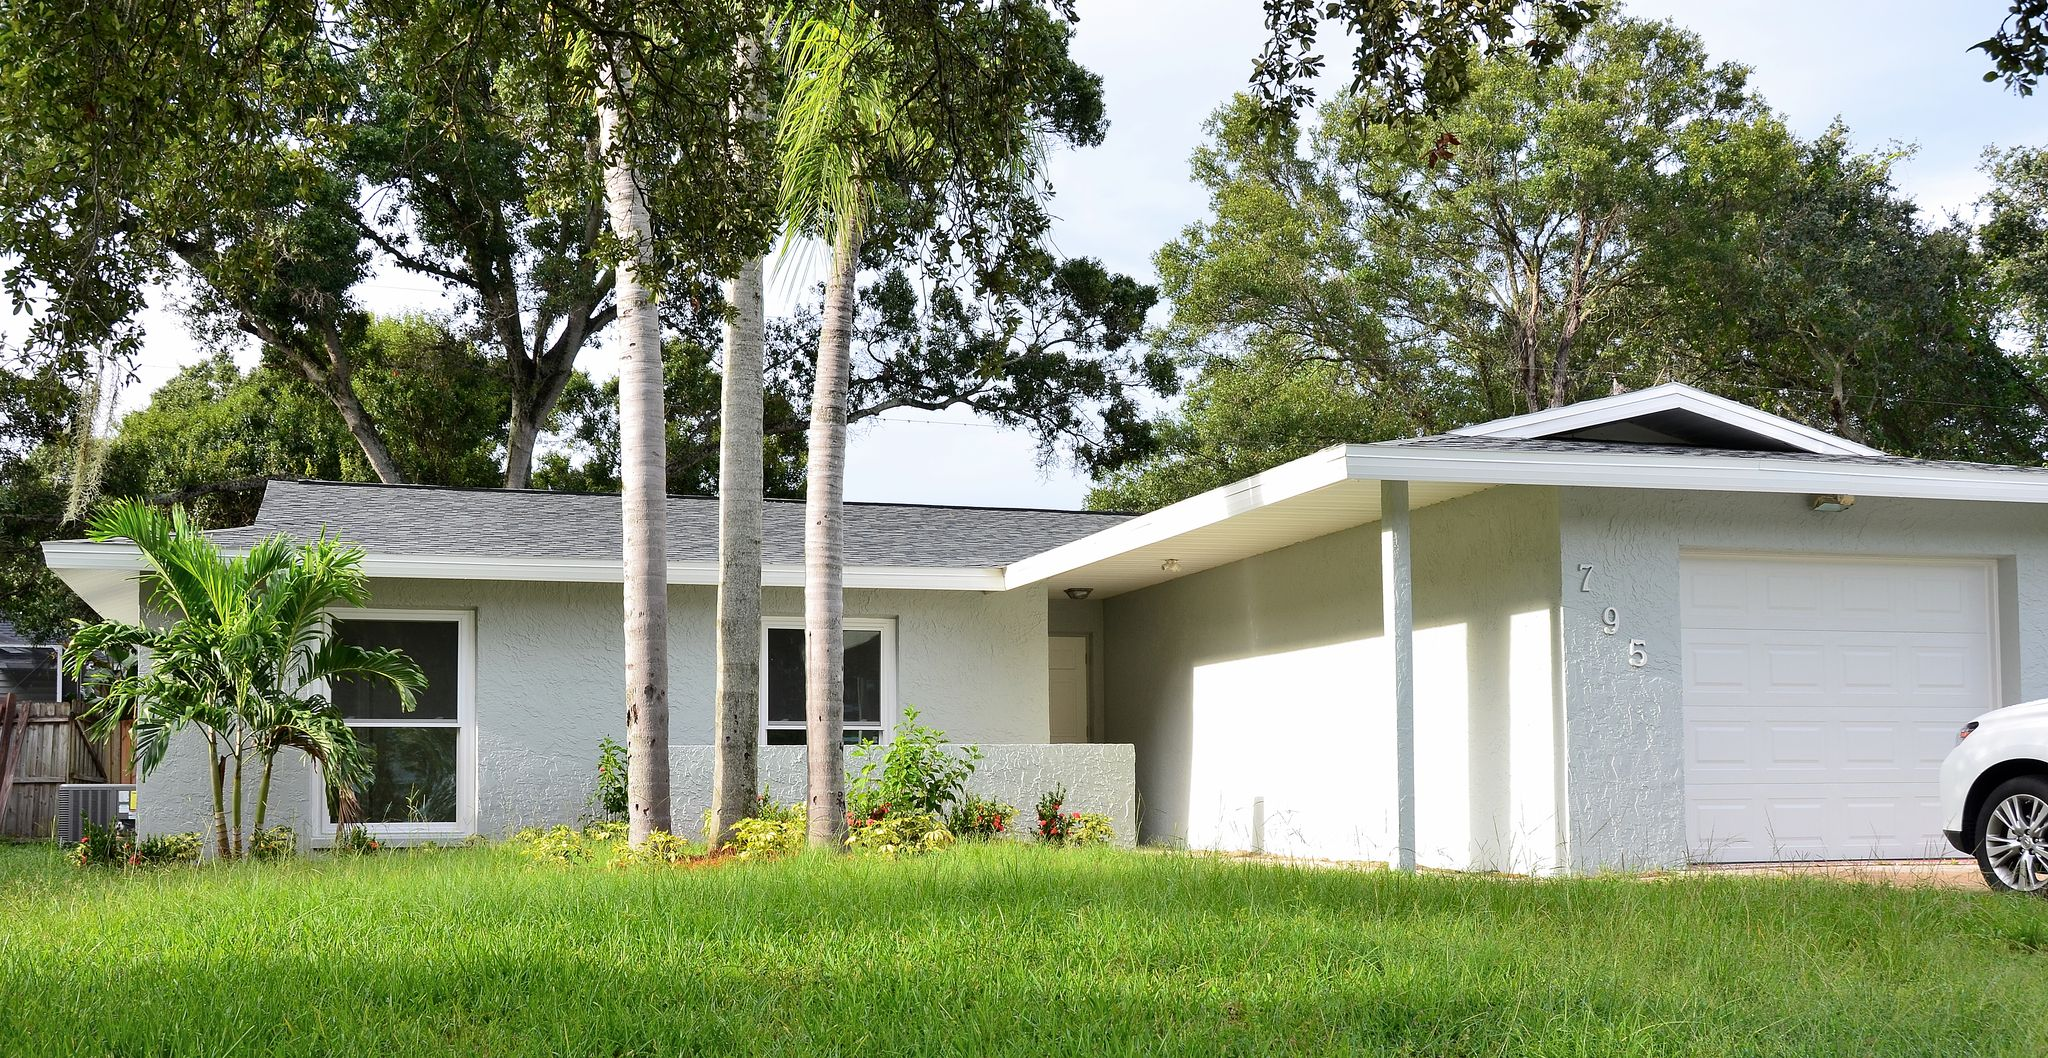 795 7th St S, Safety Harbor, FL 34695 - Estimate and Home Details ...